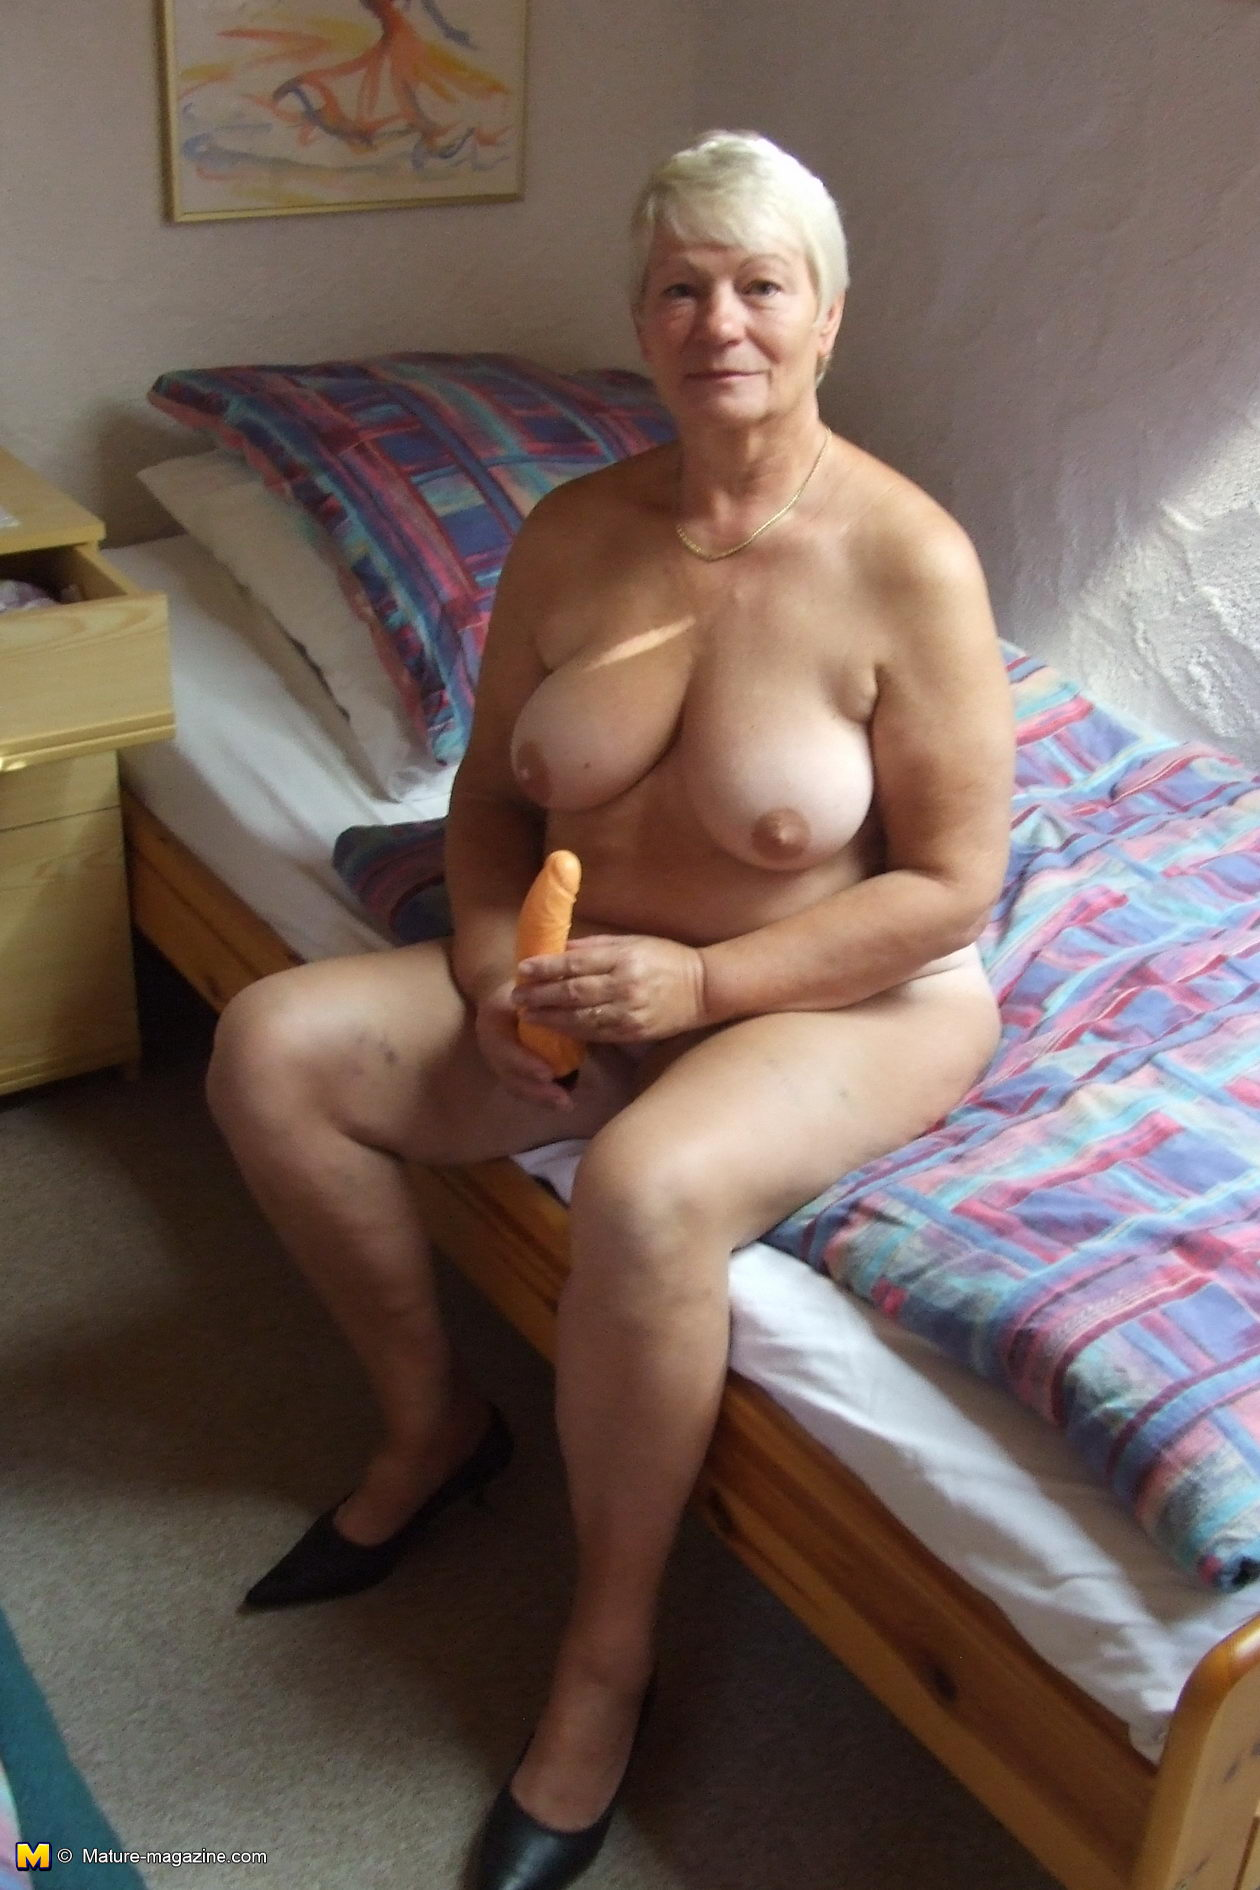 Think granny and her shaved pussy